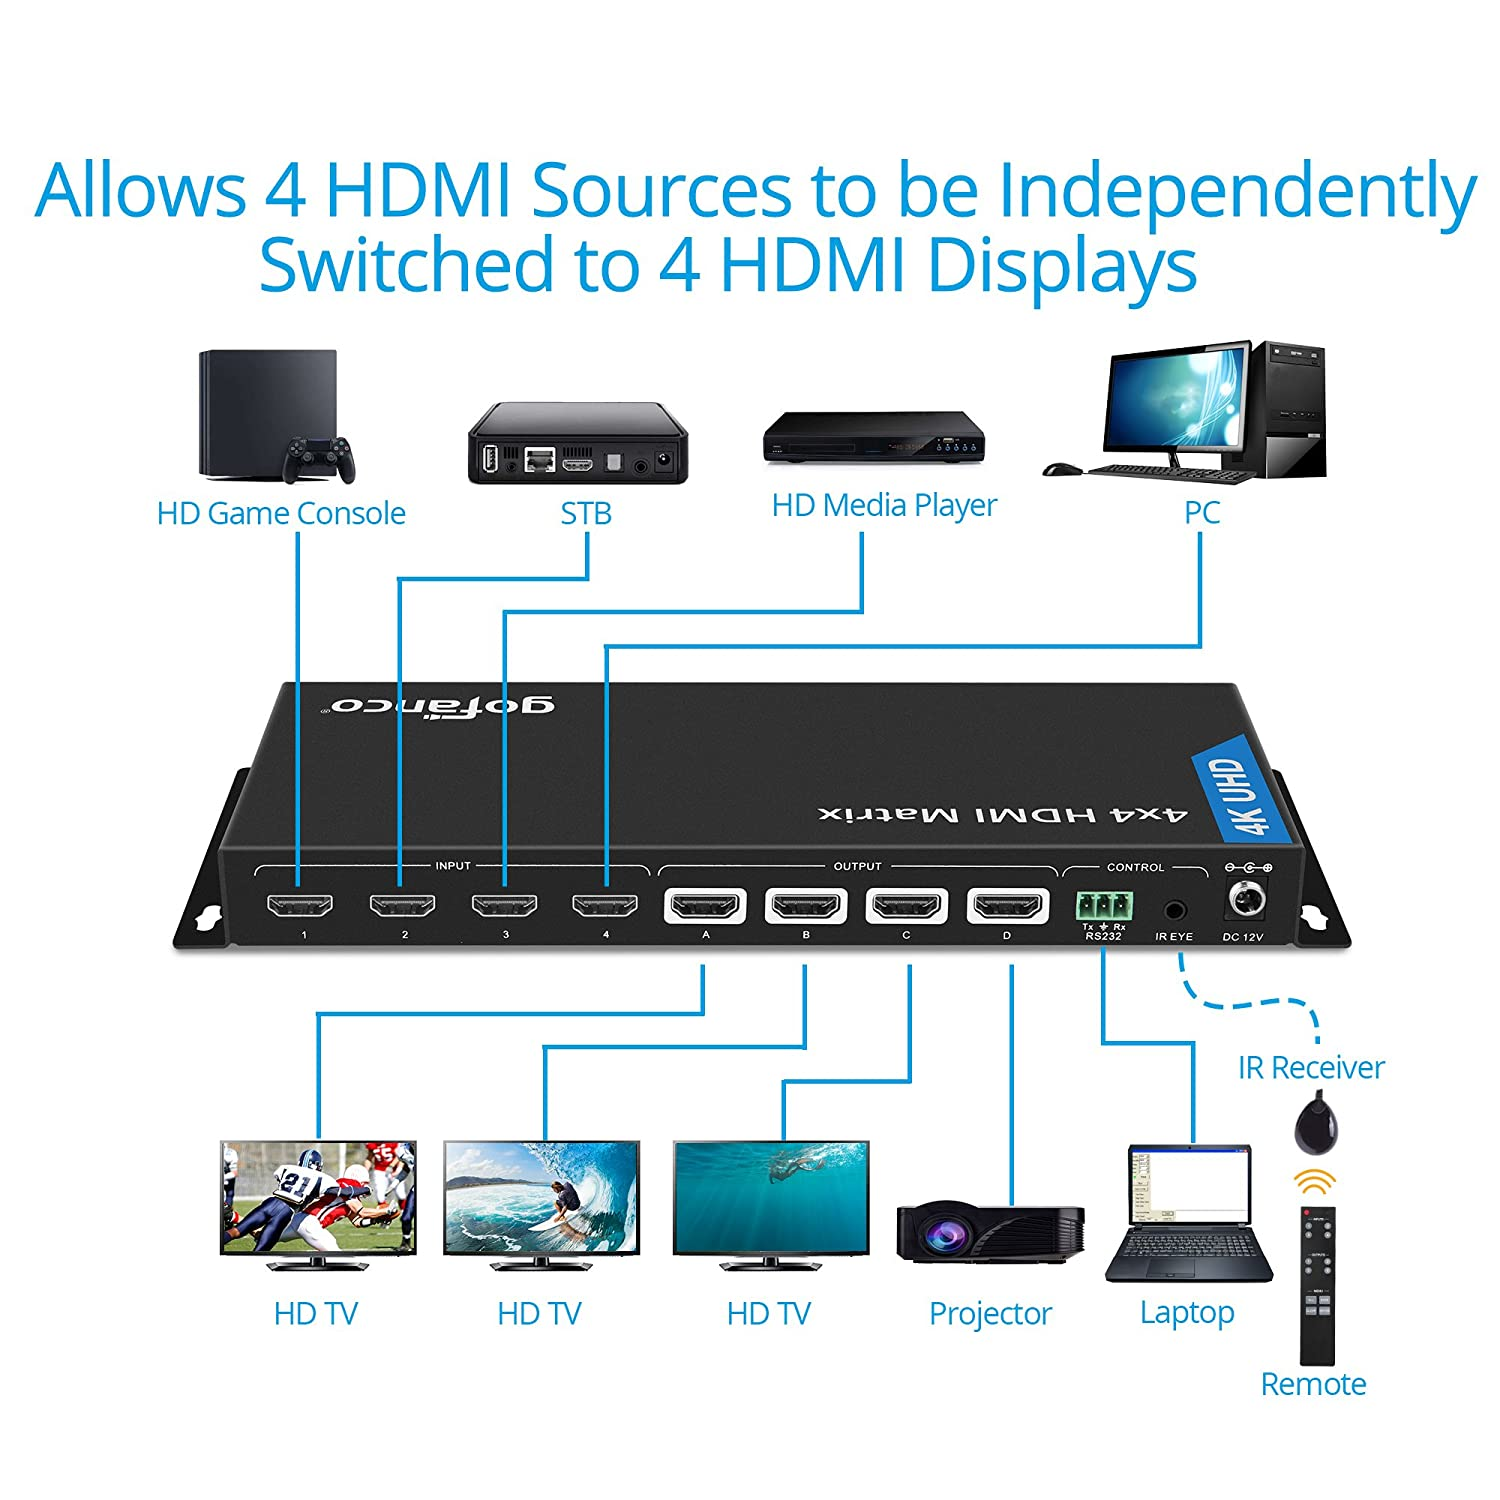 Gofanco 4k 4x4 Hdmi Matrix Splitter And Switch With Ir Details About Cat5e Cat6 Auto Extender Rs 232 Control Up To 60hz 420 3d 14 Hdcp 22dolby Truehd Edid